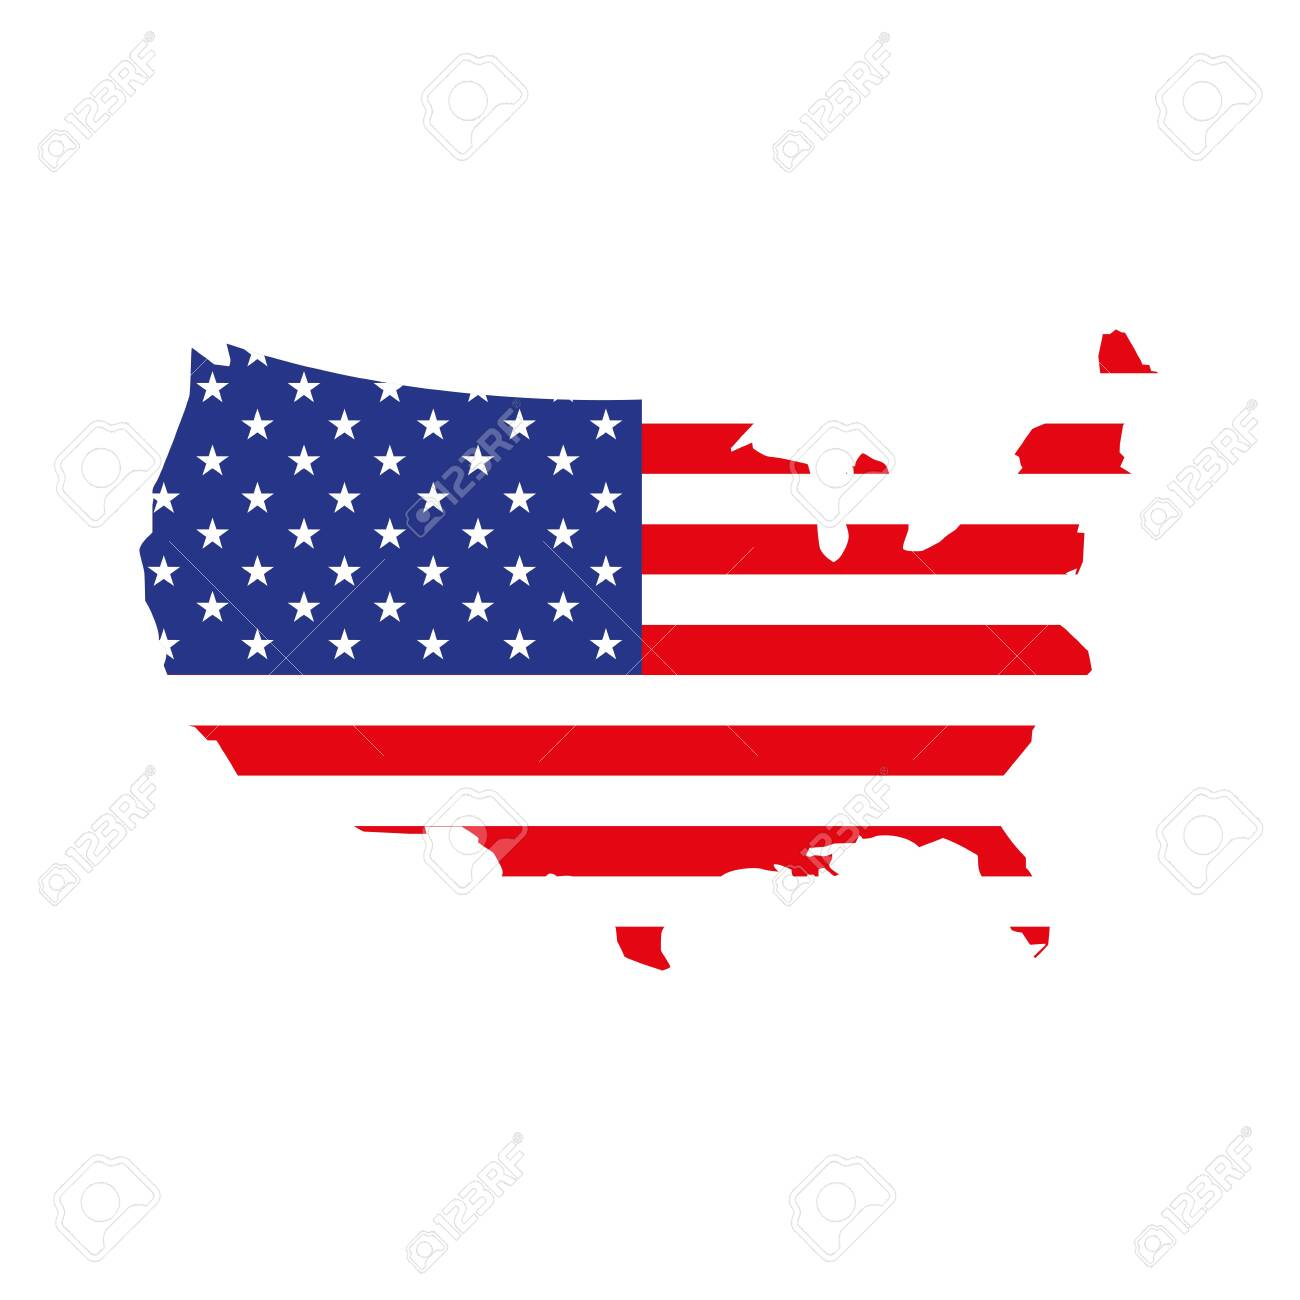 united states map with flag vector illustration design - 137645060